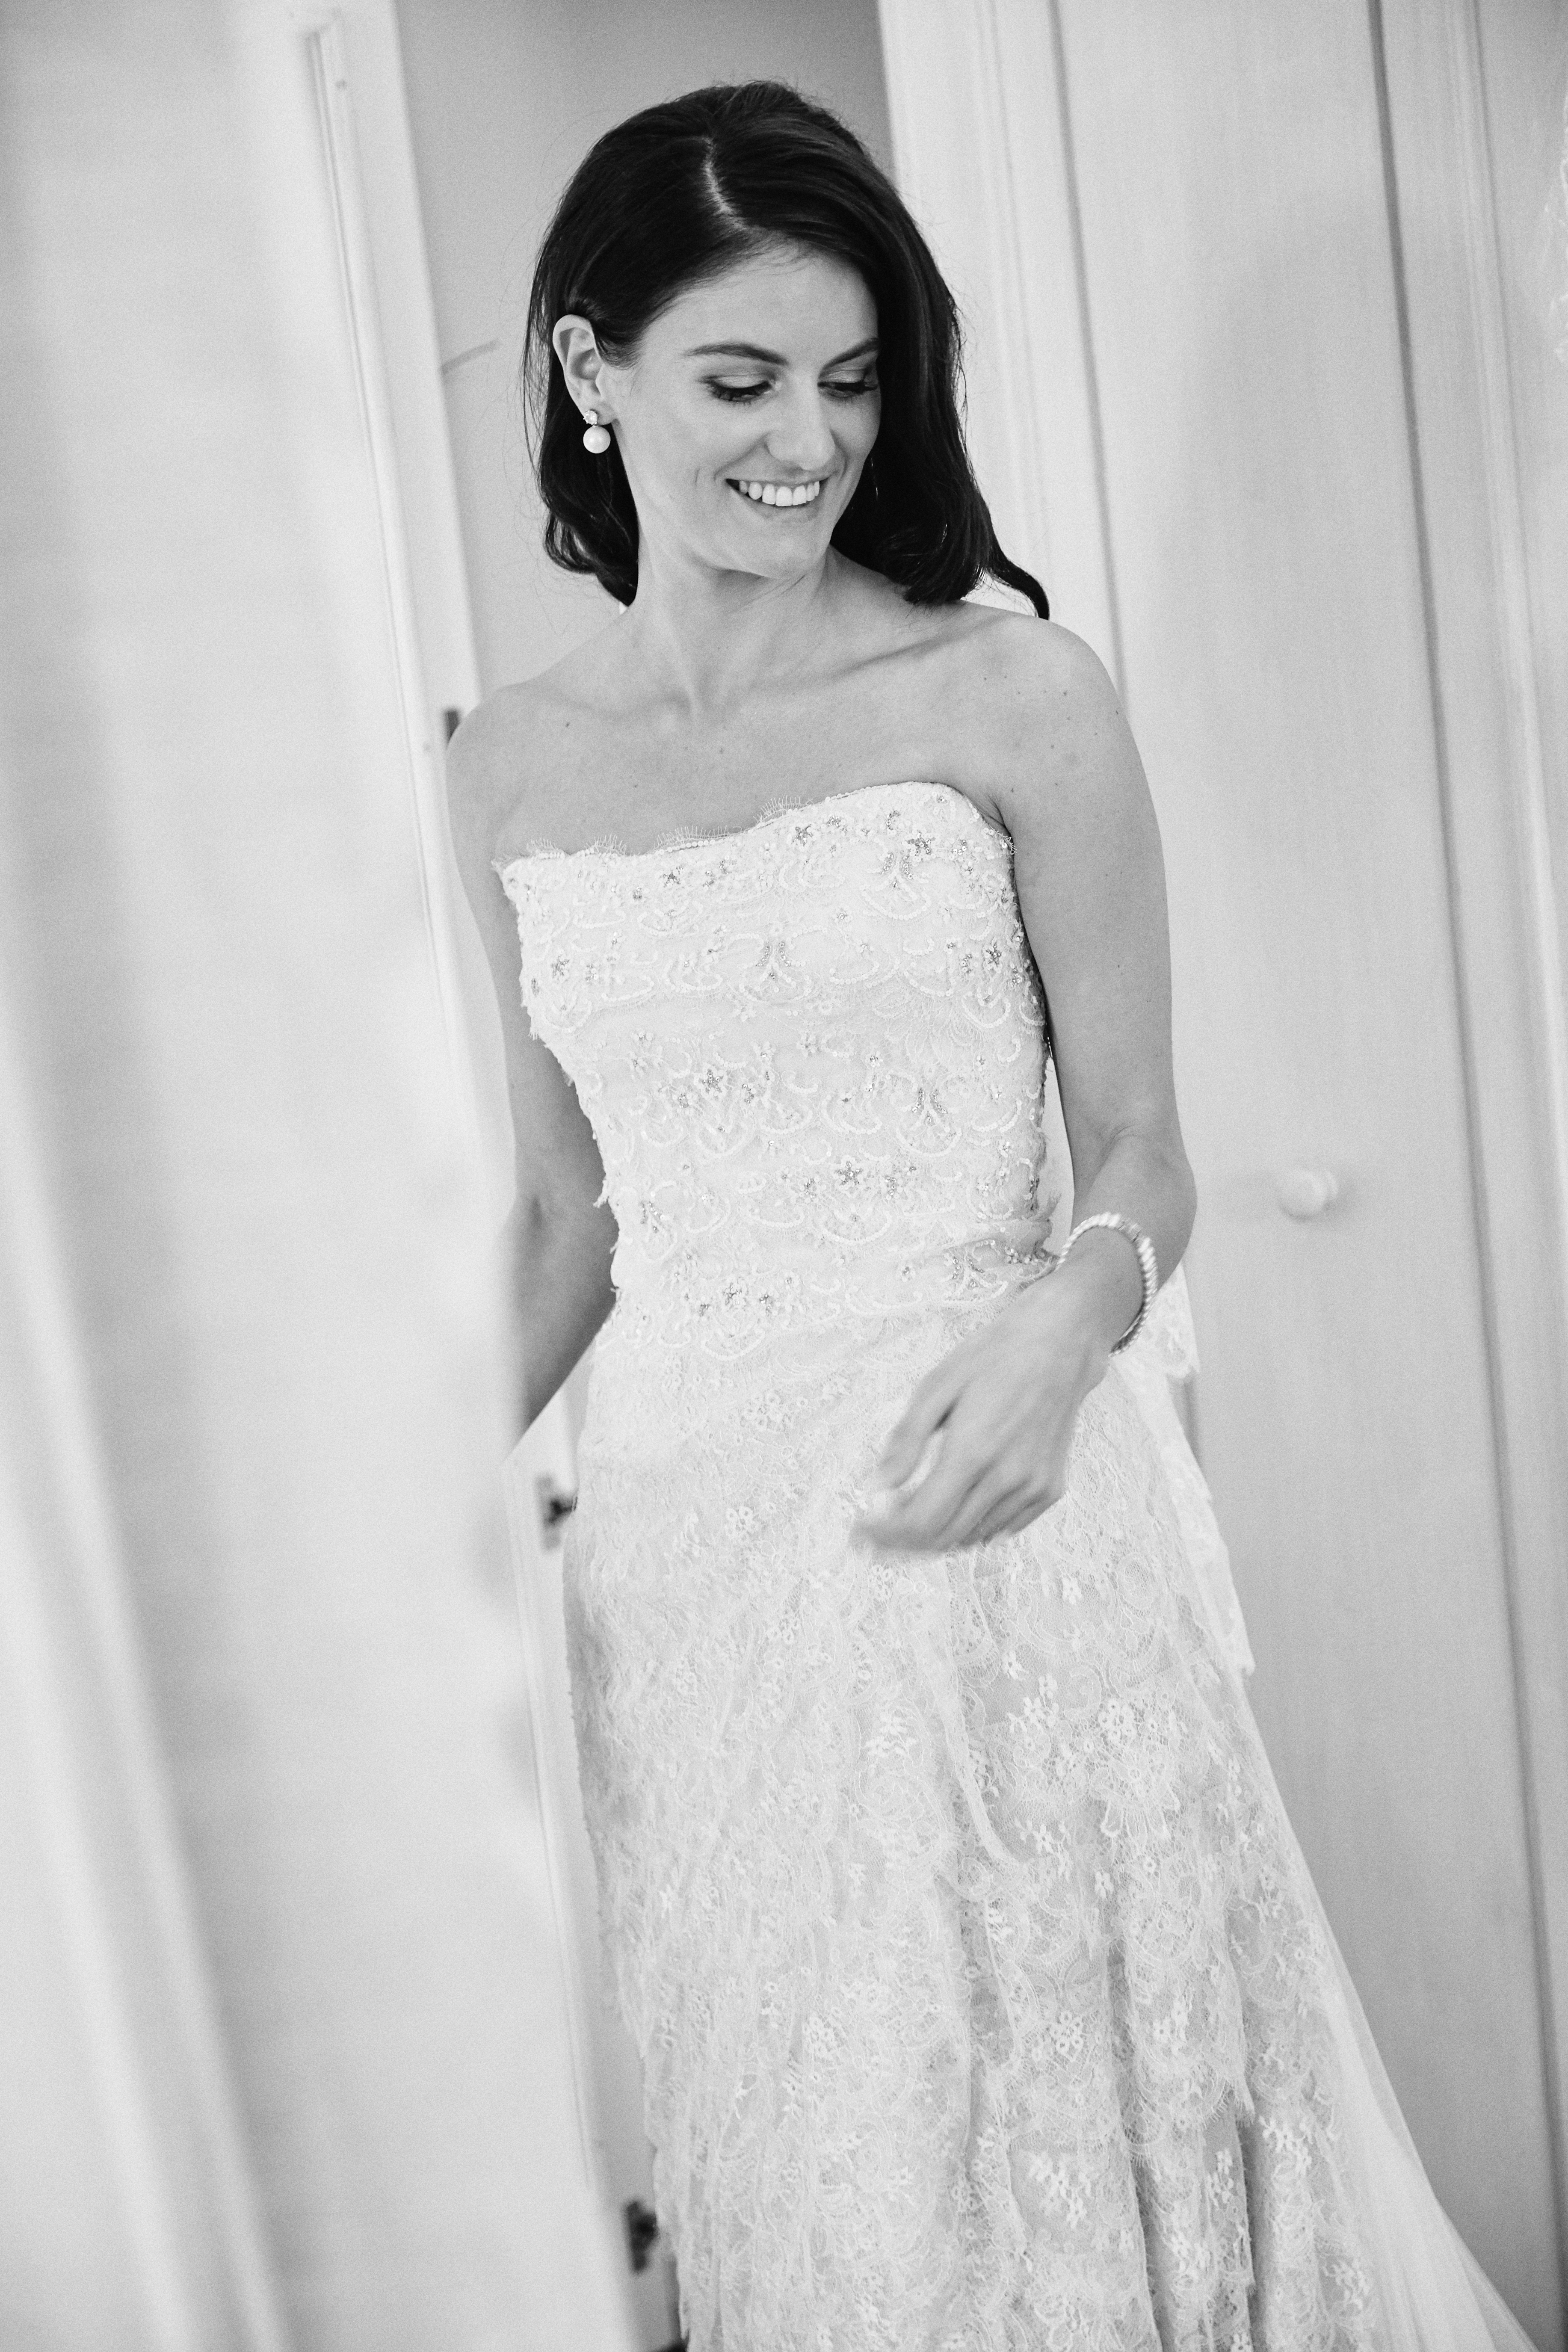 Sophia&Will_Wedding_Portofino_898B6117